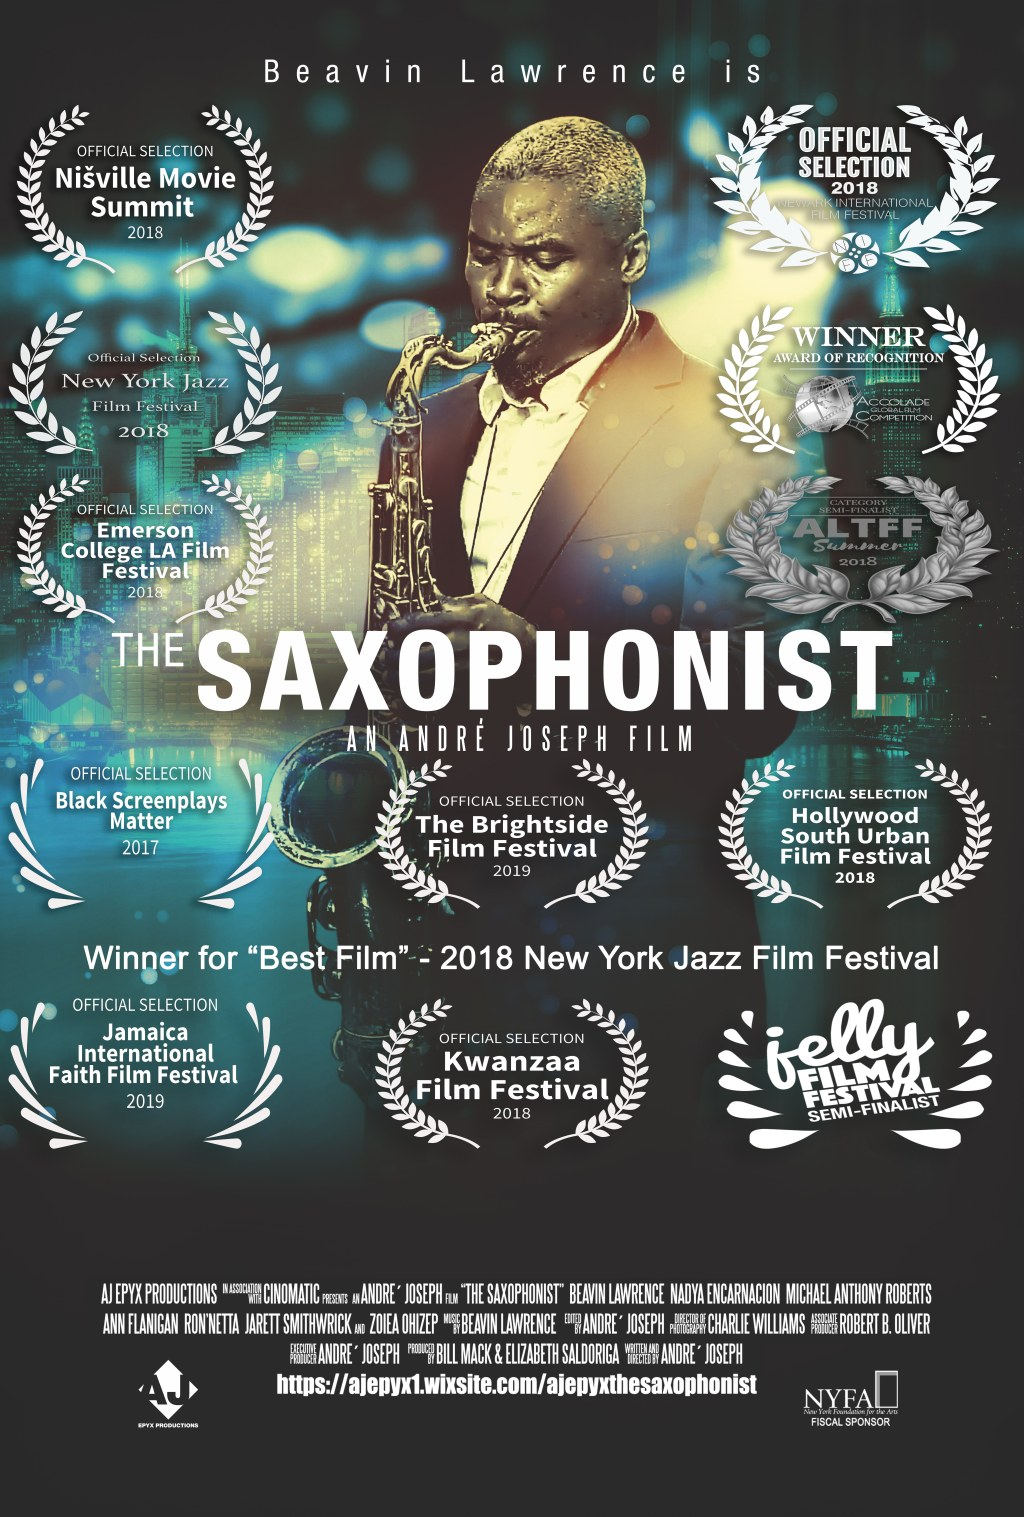 sax final poster ff jan 2019 copy